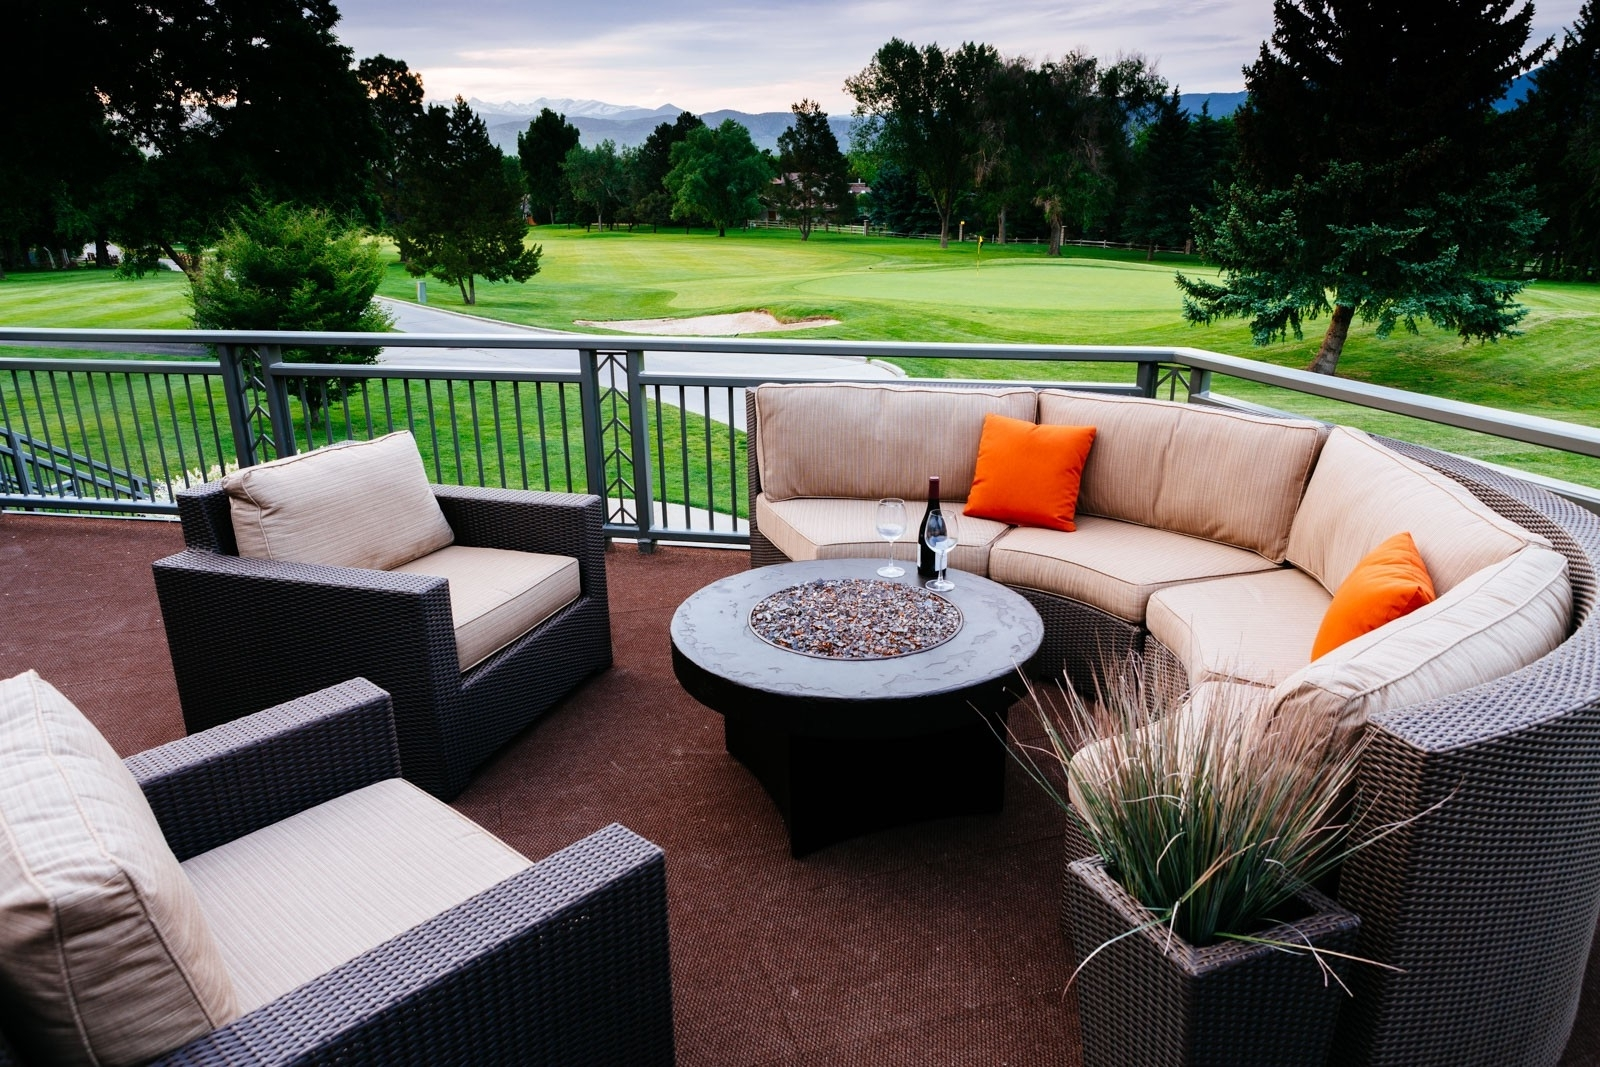 Patio Conversation Sets With Gas Fire Pit Intended For Famous Decoration : Outdoor Sectional With Fire Pit Propane Fire Pit Set (View 9 of 15)